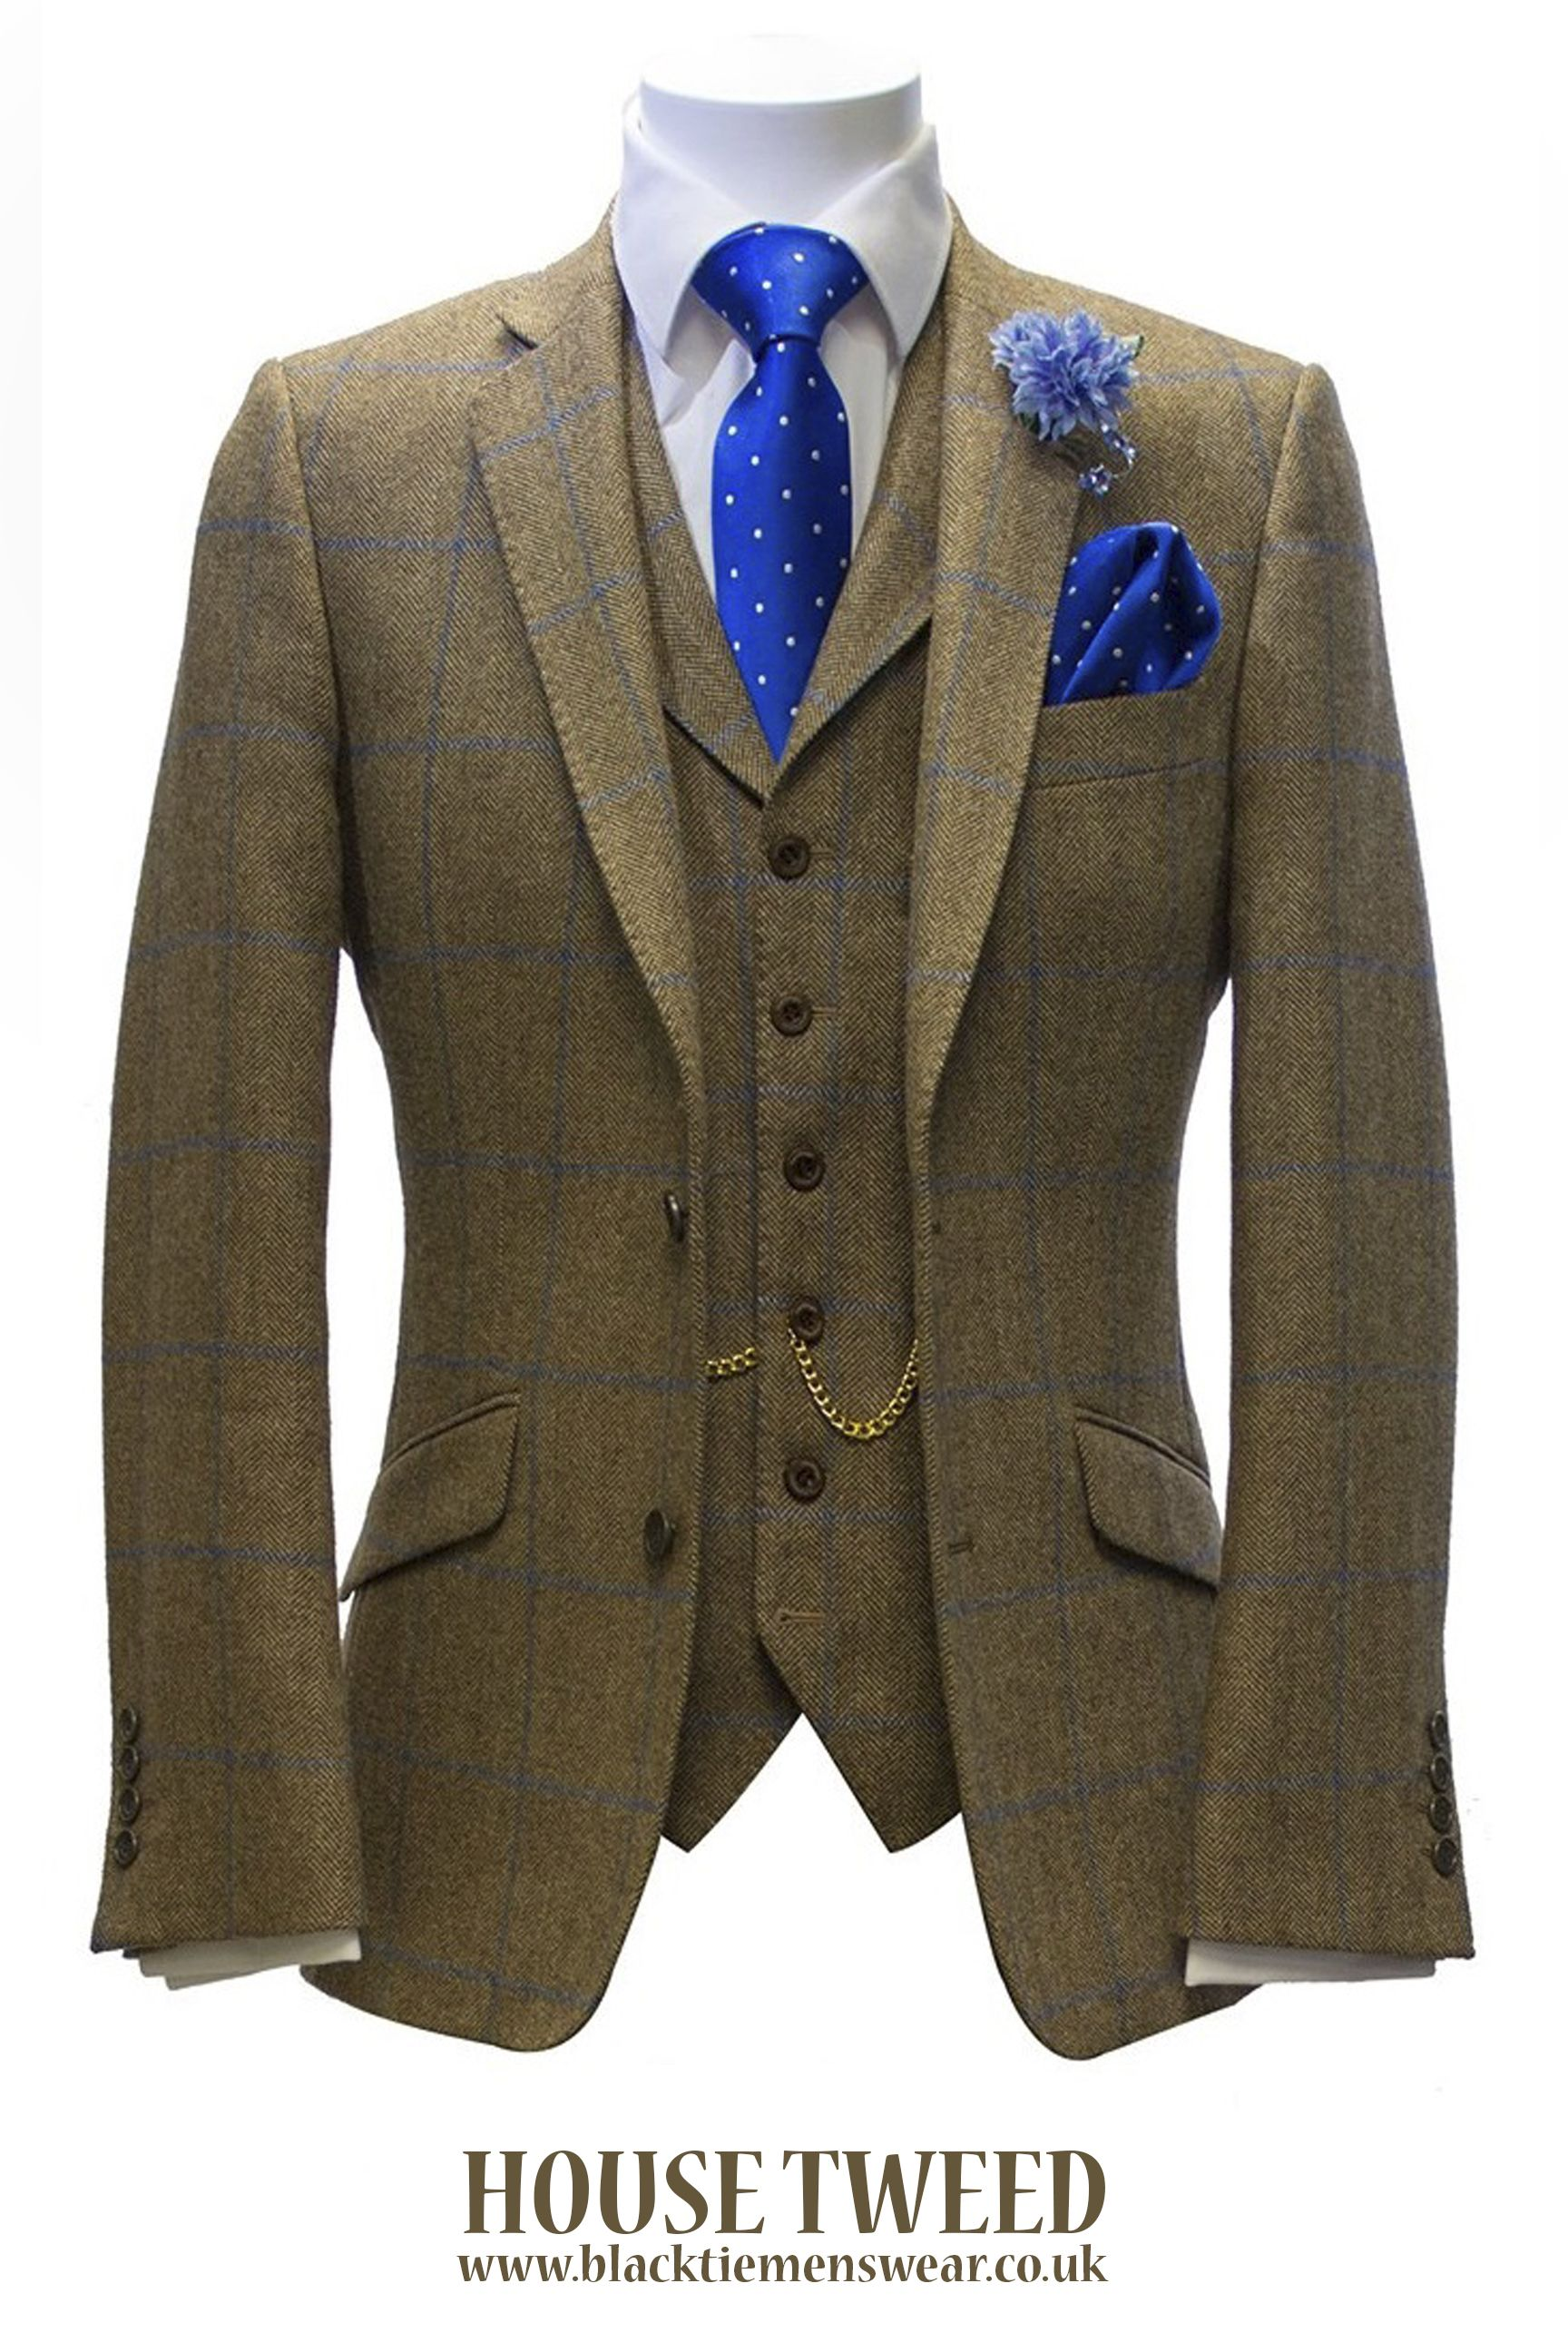 d1642d0d35e6 Our award-winning exclusive house 3-piece tweed suit hire package is priced  at